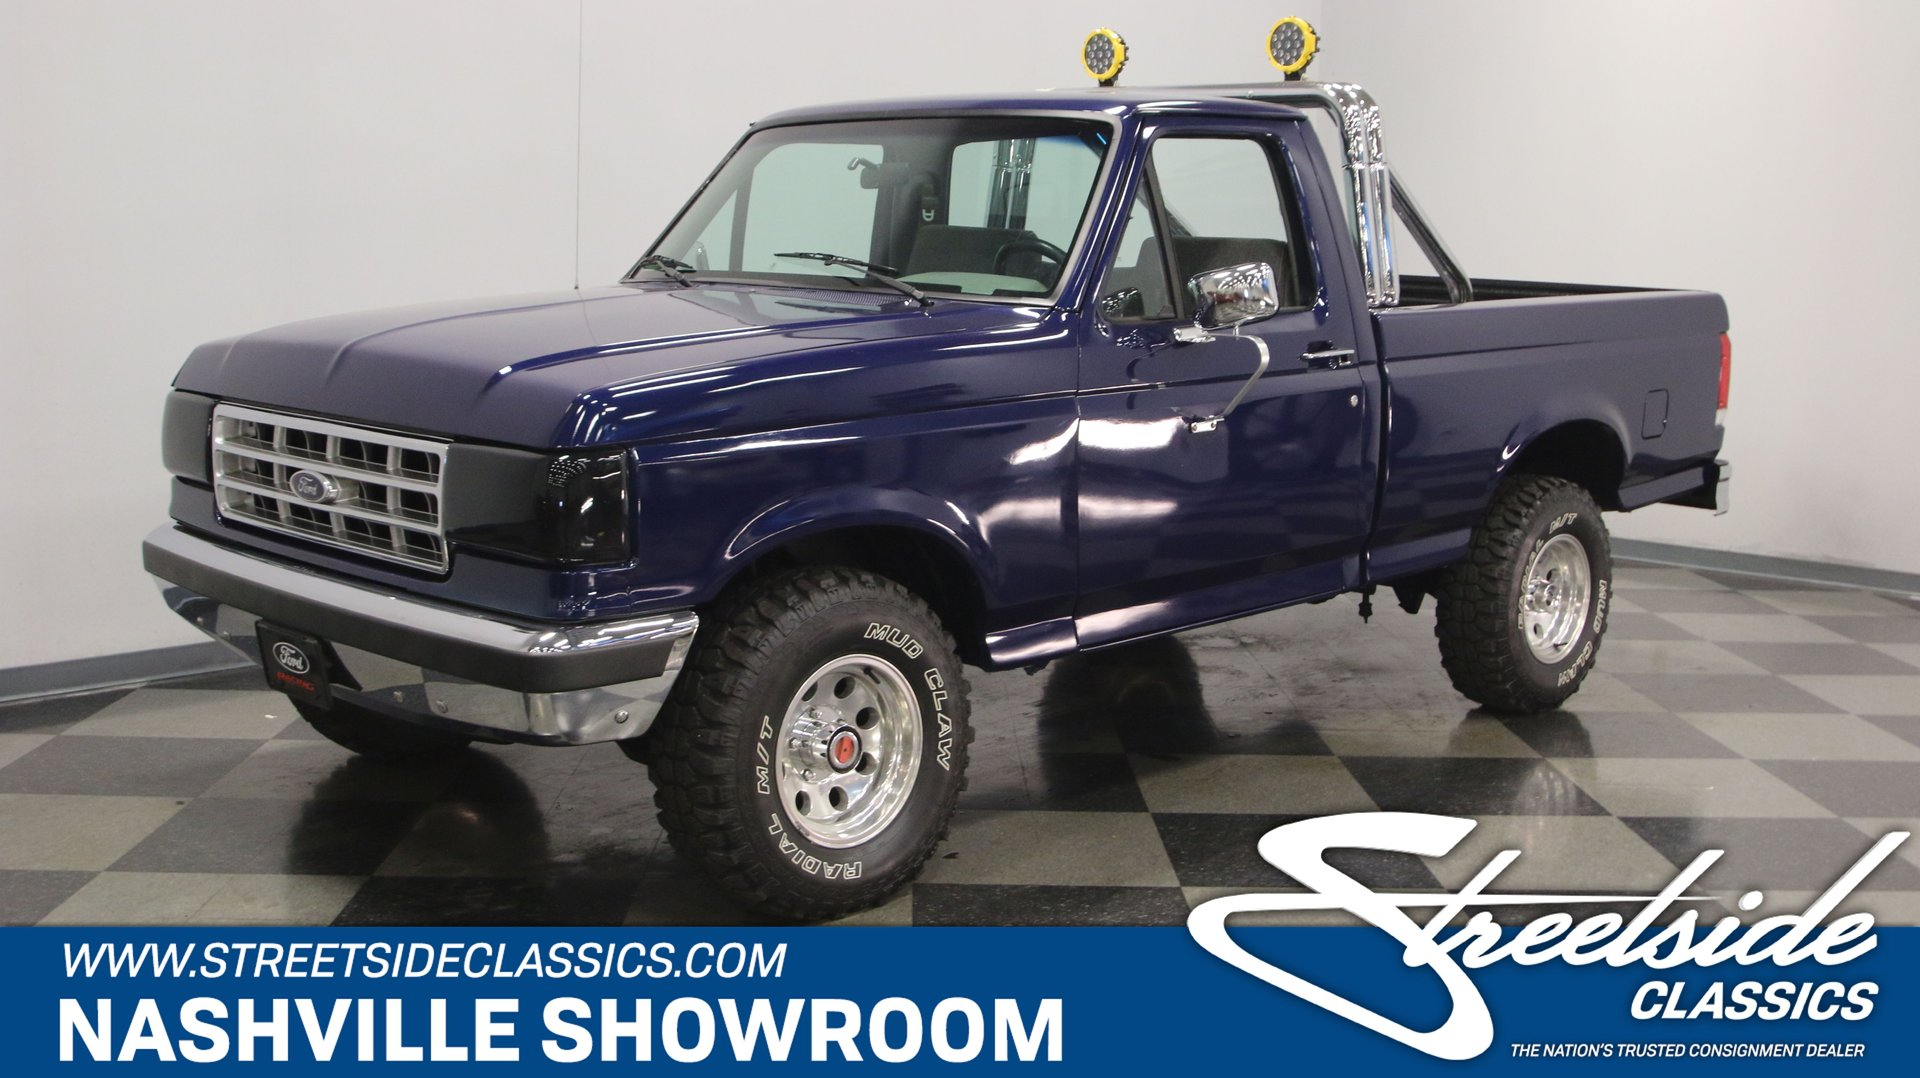 1988 Ford F-150 | Streetside Classics - The Nation's Trusted Classic Car  Consignment DealerStreetside Classics